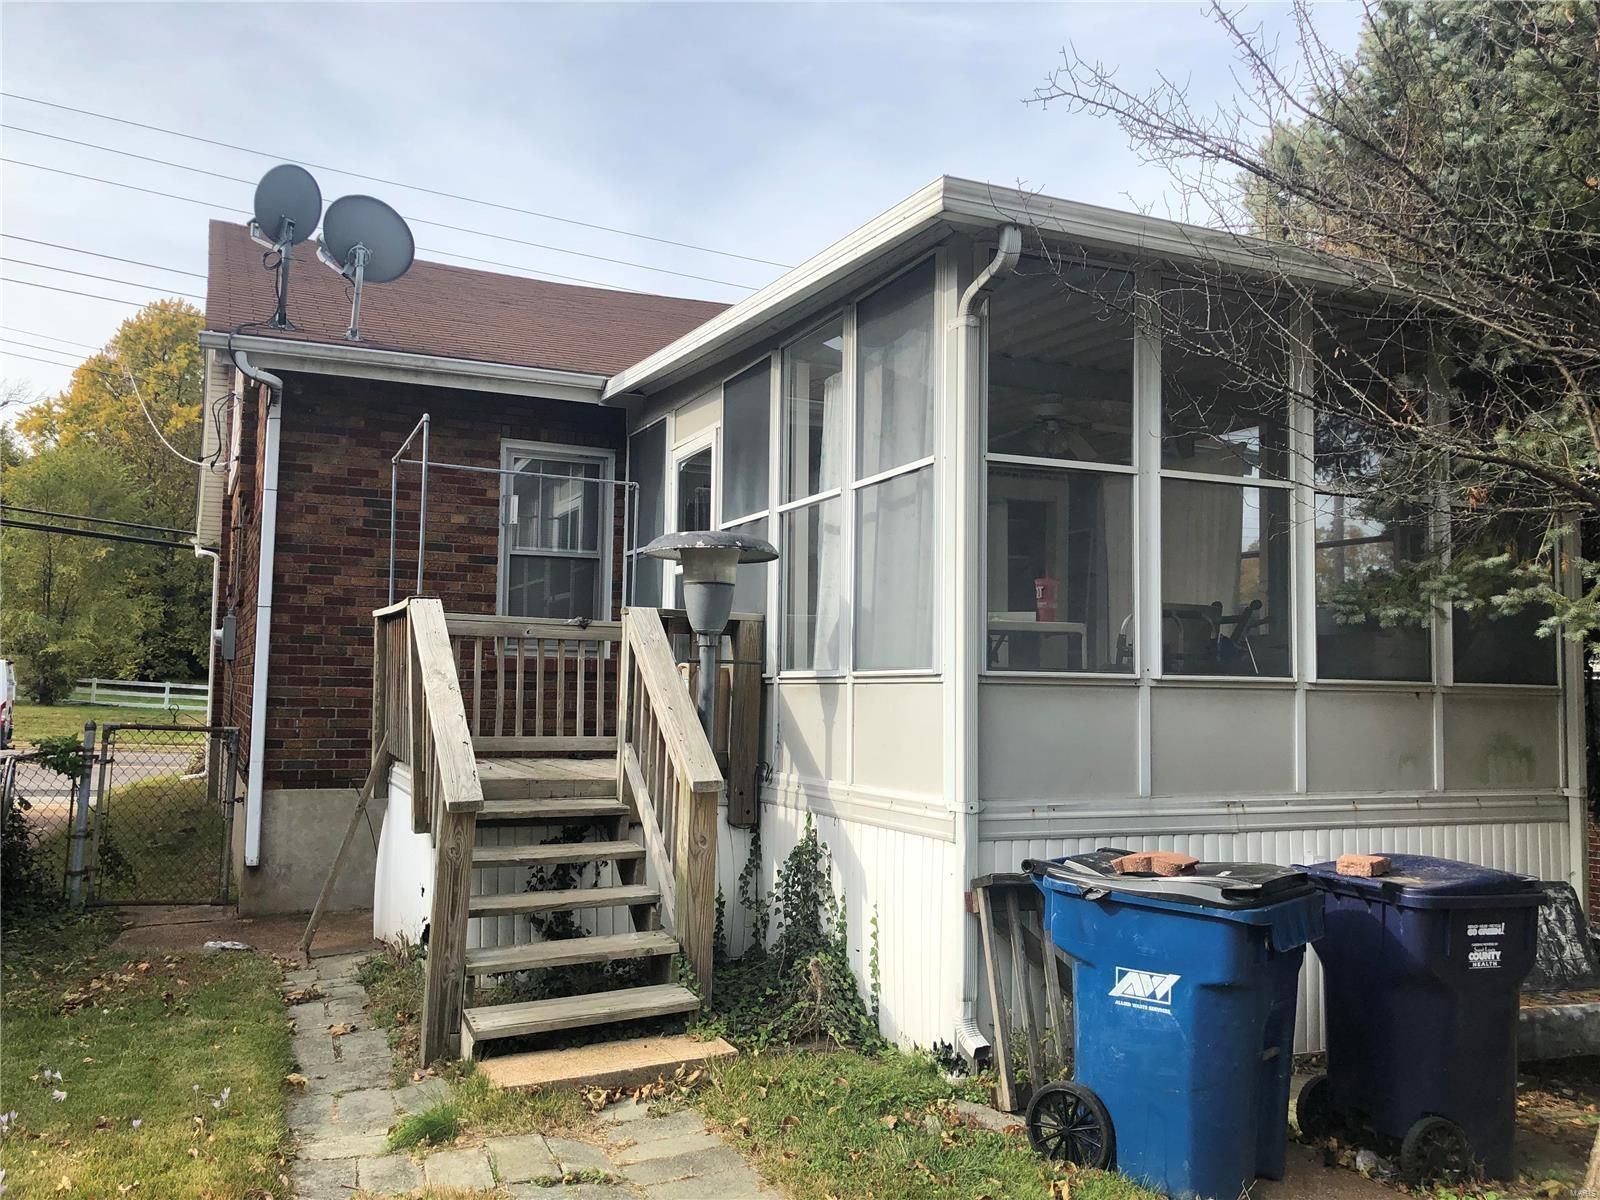 Cheap Fixer Upper Houses Under $50,000 | Apartment Therapy